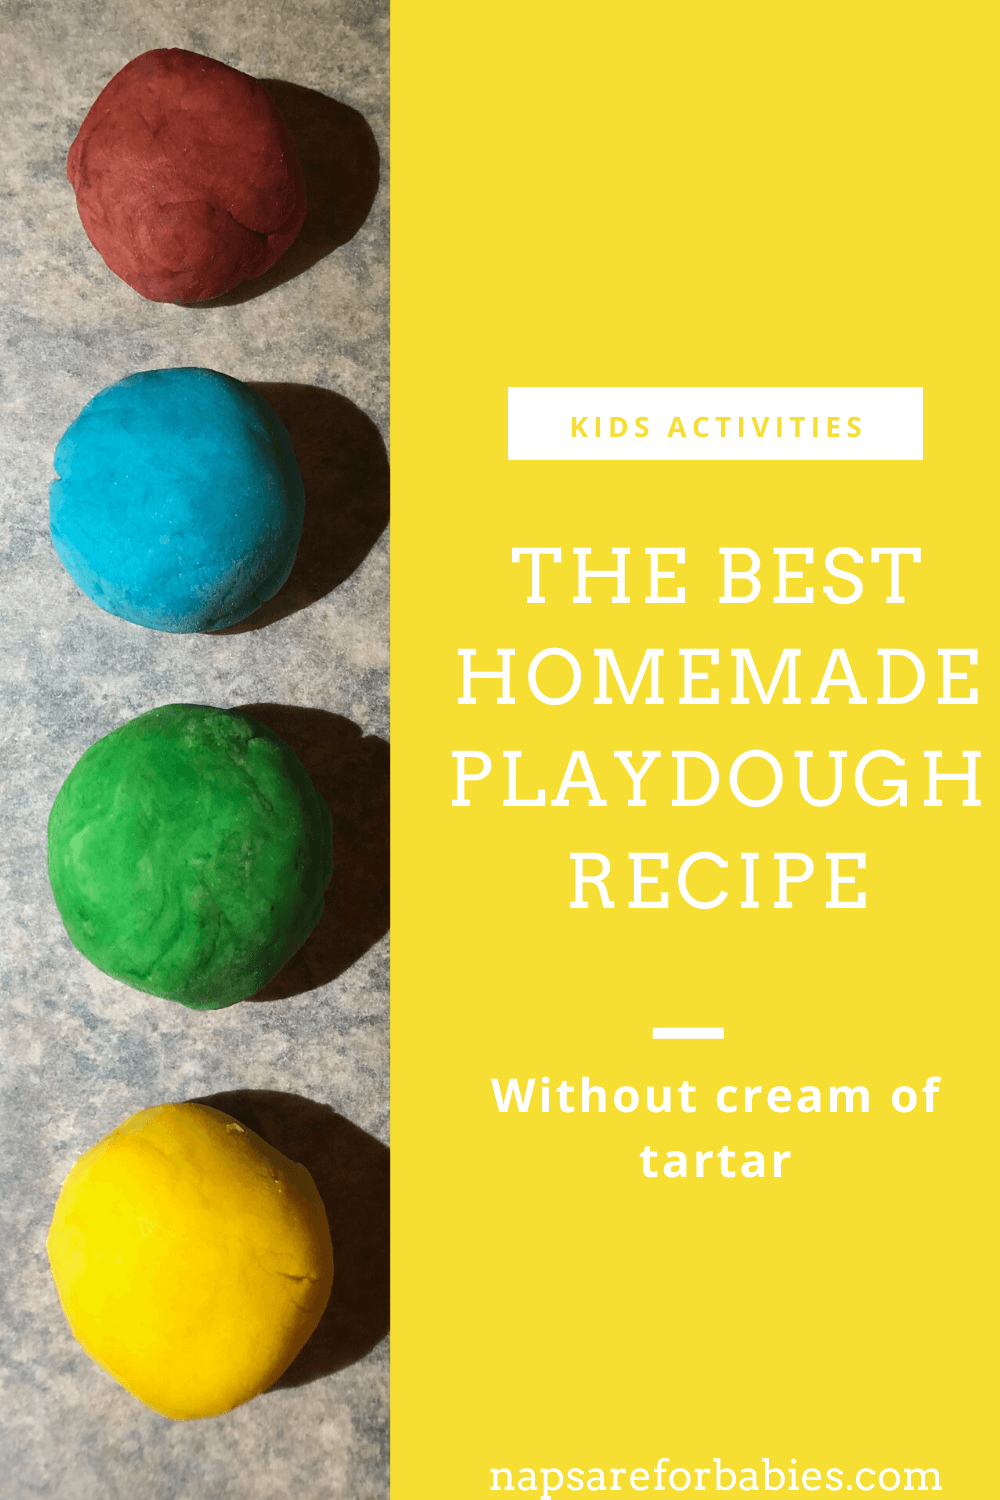 Homemade playdough without cream of tartar {the EASIEST